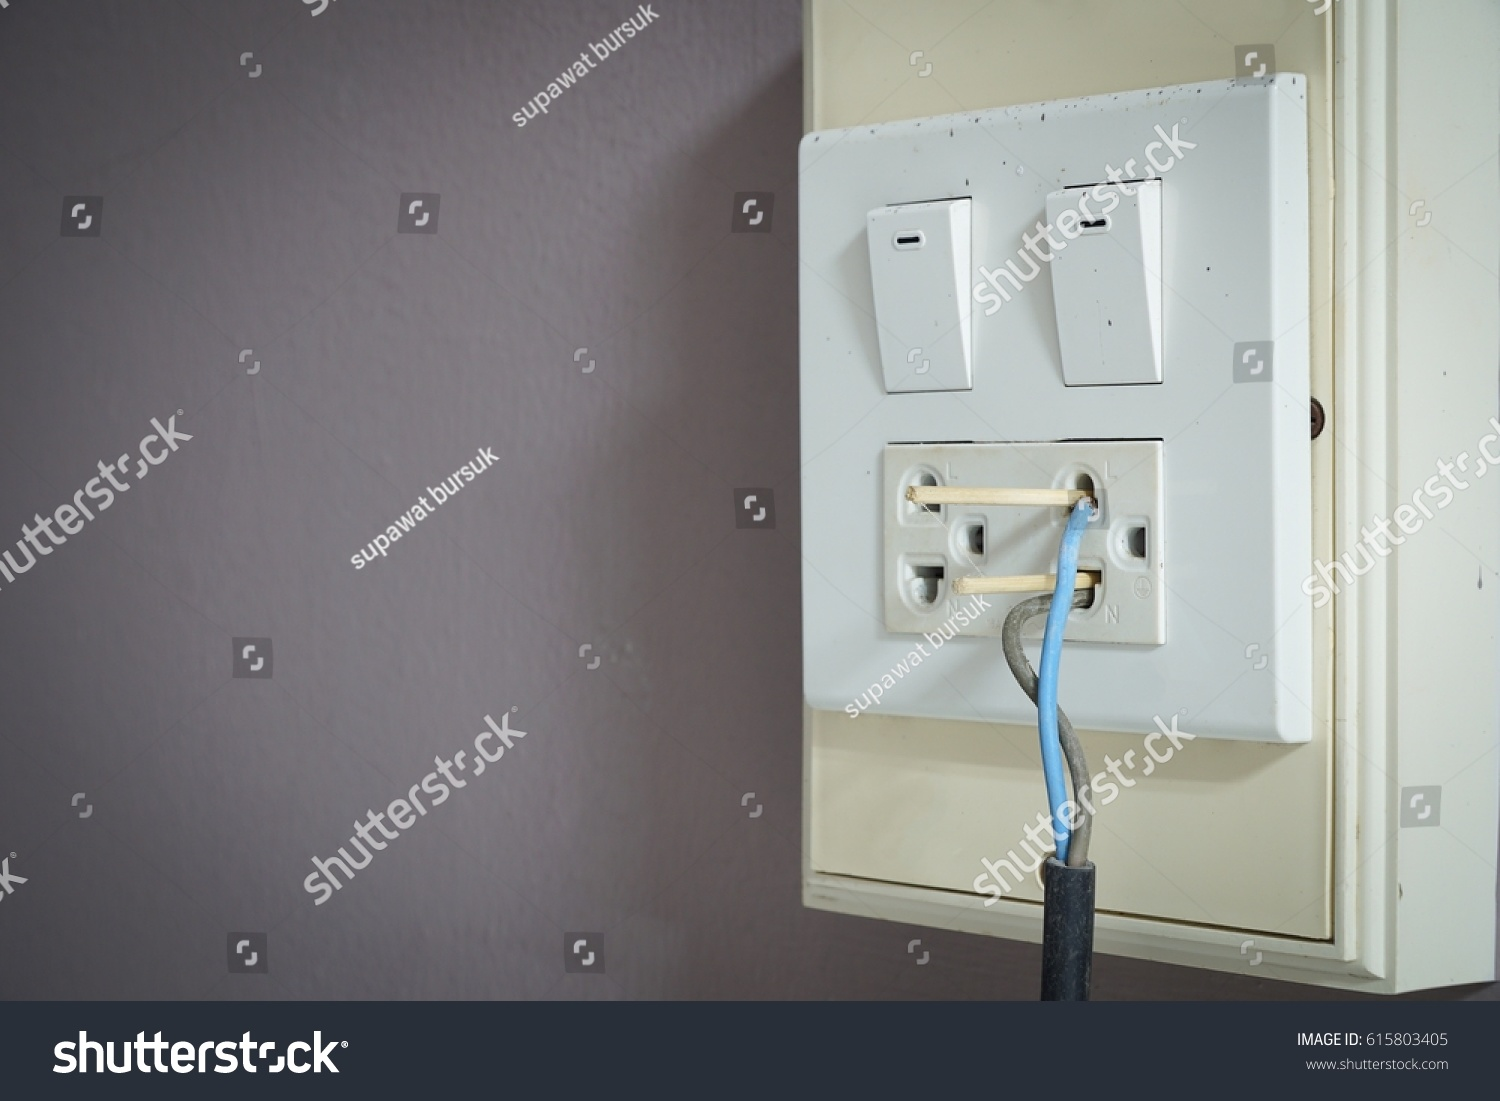 Badly Wired Plug Showing Bad Wrong Stock Photo (Edit Now) 615803405 ...